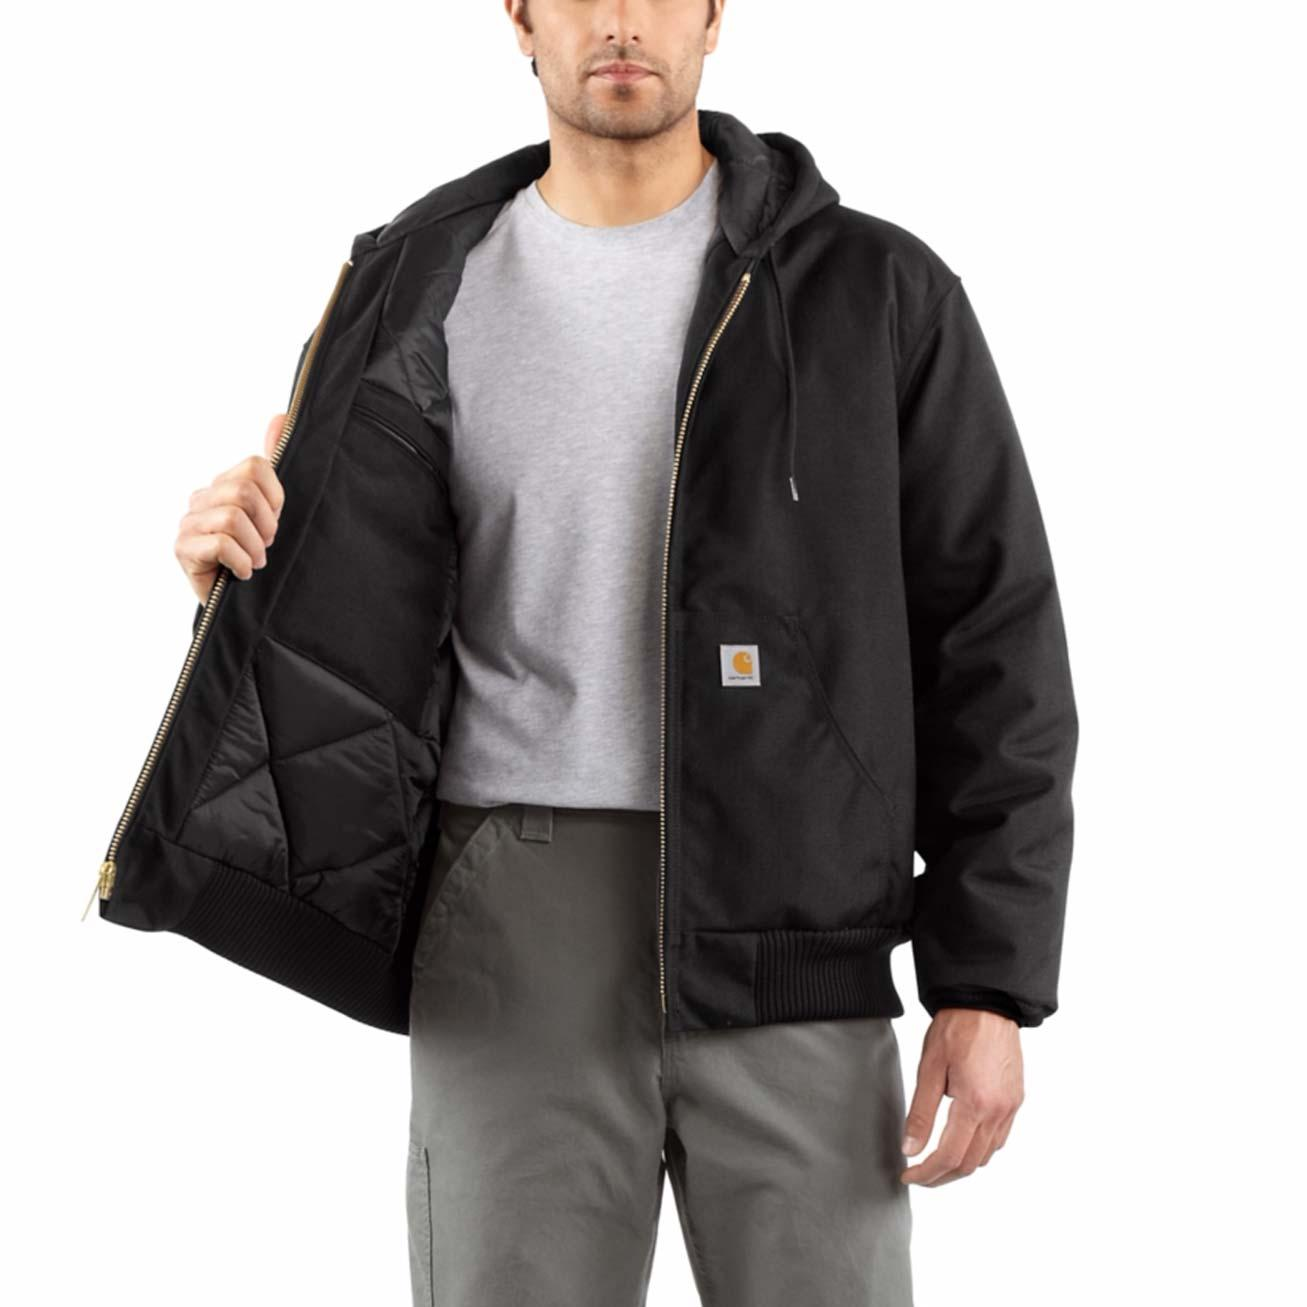 Carhartt Extremes Arctic Quilt Lined Active Jacket J133blk